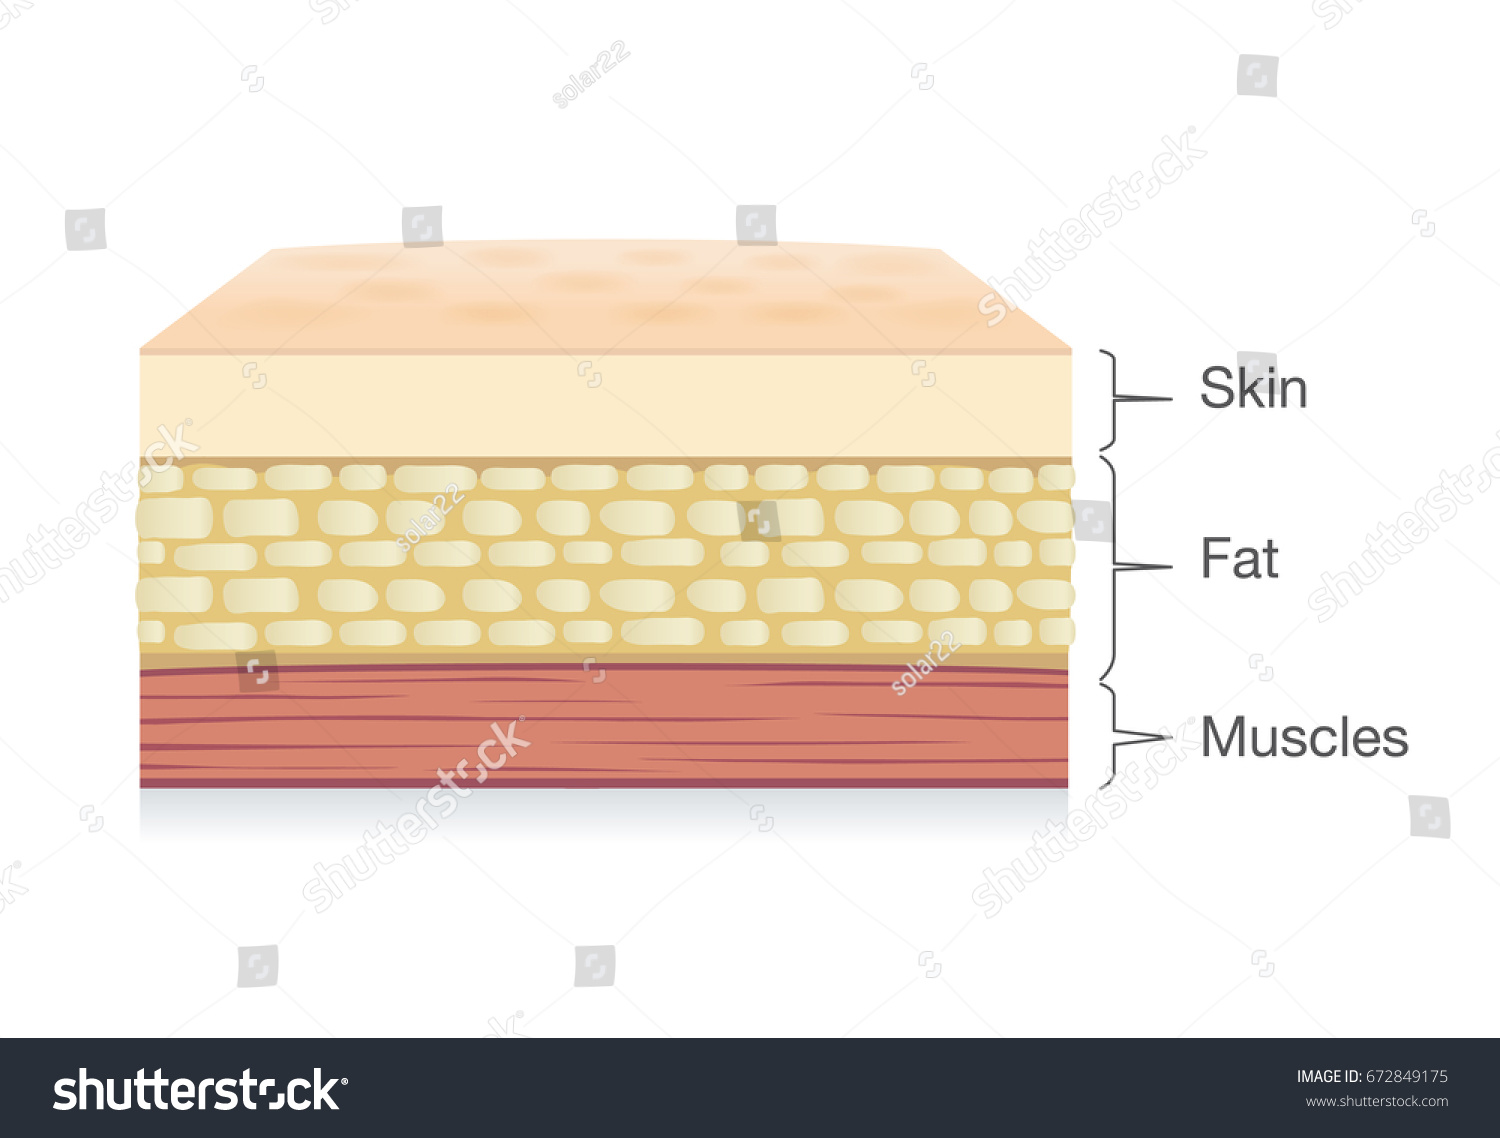 Anatomy Skin Layer Fat Cell Muscle Stock Photo Photo Vector